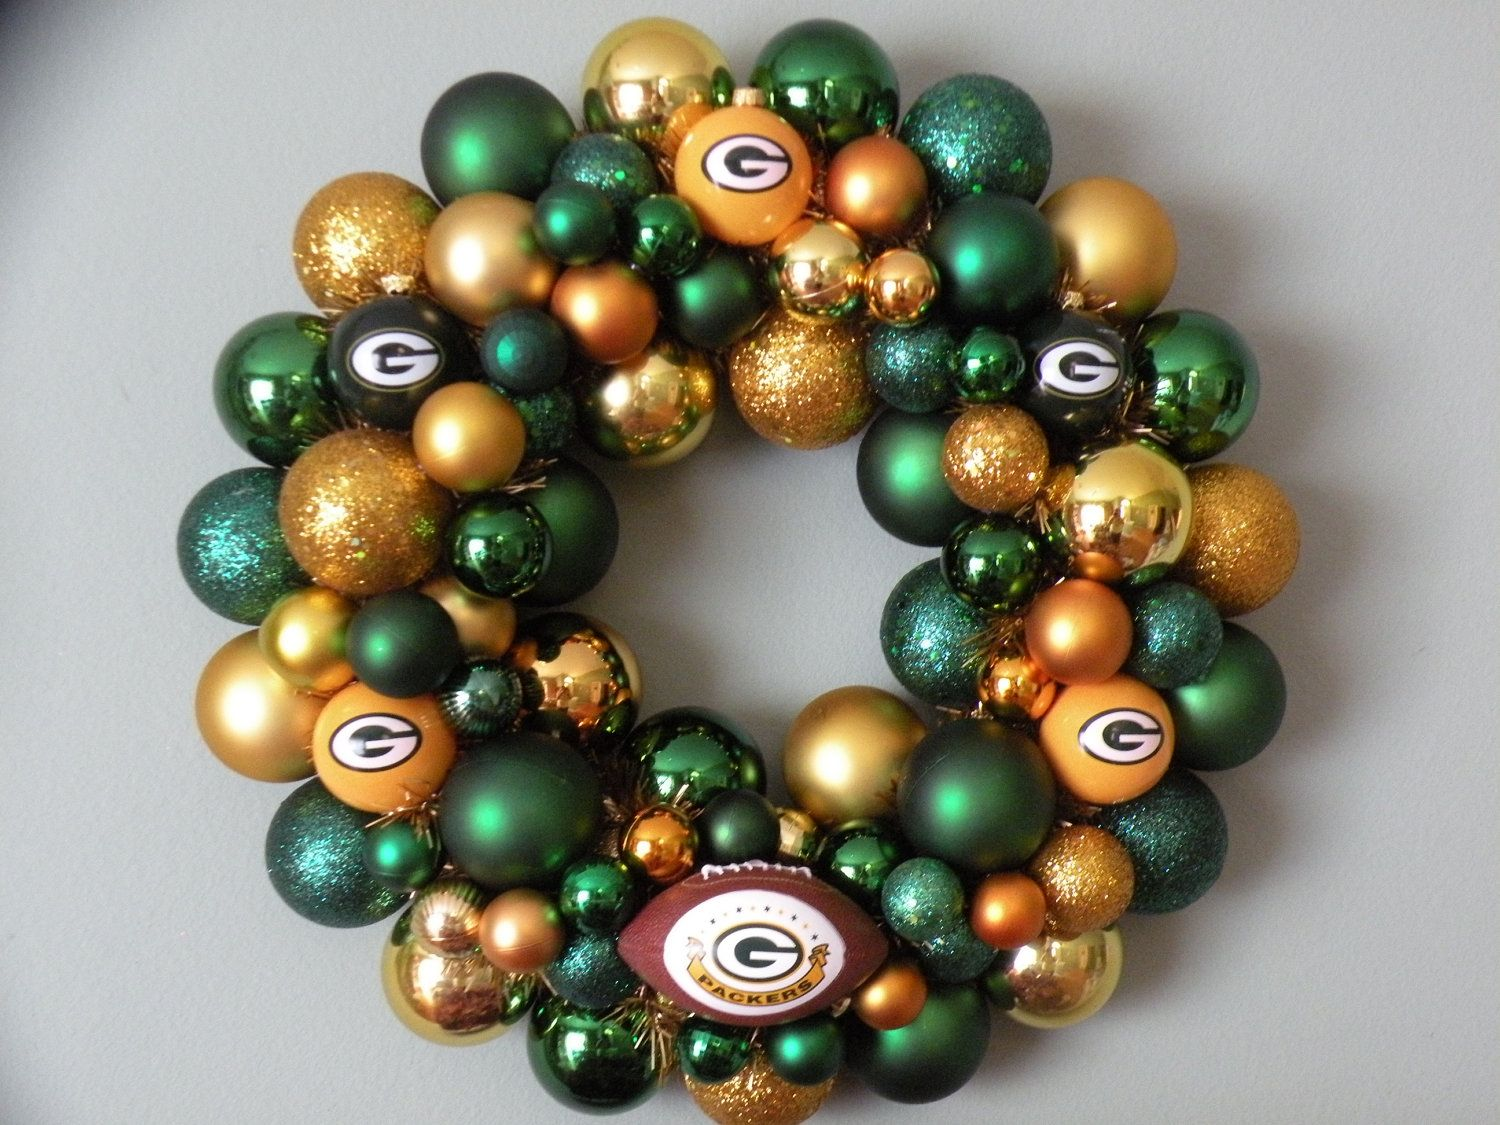 green bay packers wreath dont think id actually do this but its a cute idea - Green Bay Packers Christmas Ornaments